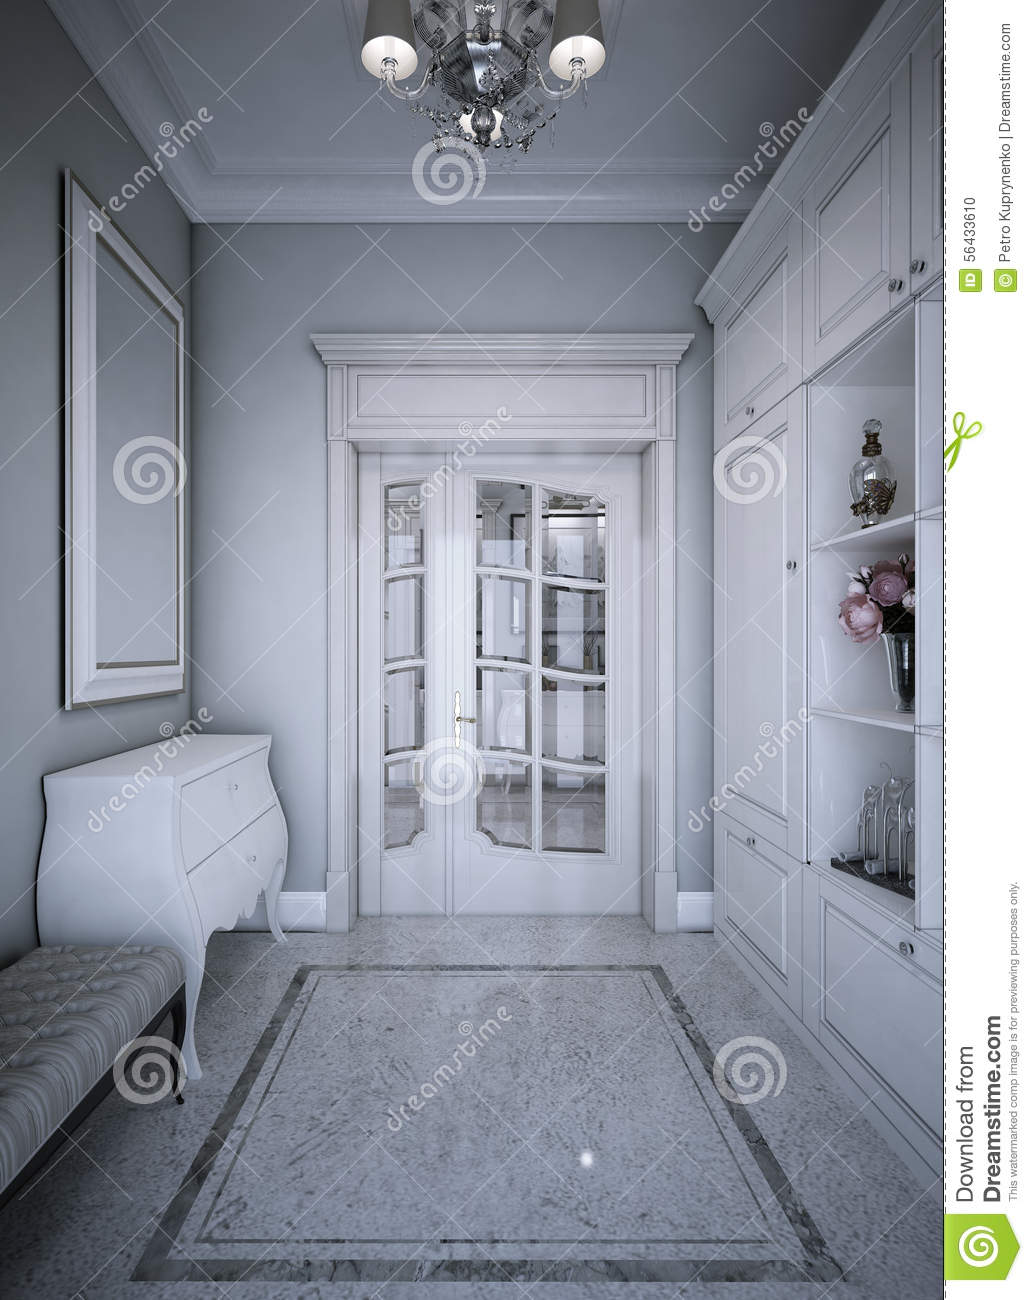 Entrance Hall Art Deco Style Stock Photo - Image of luxury, closet ...